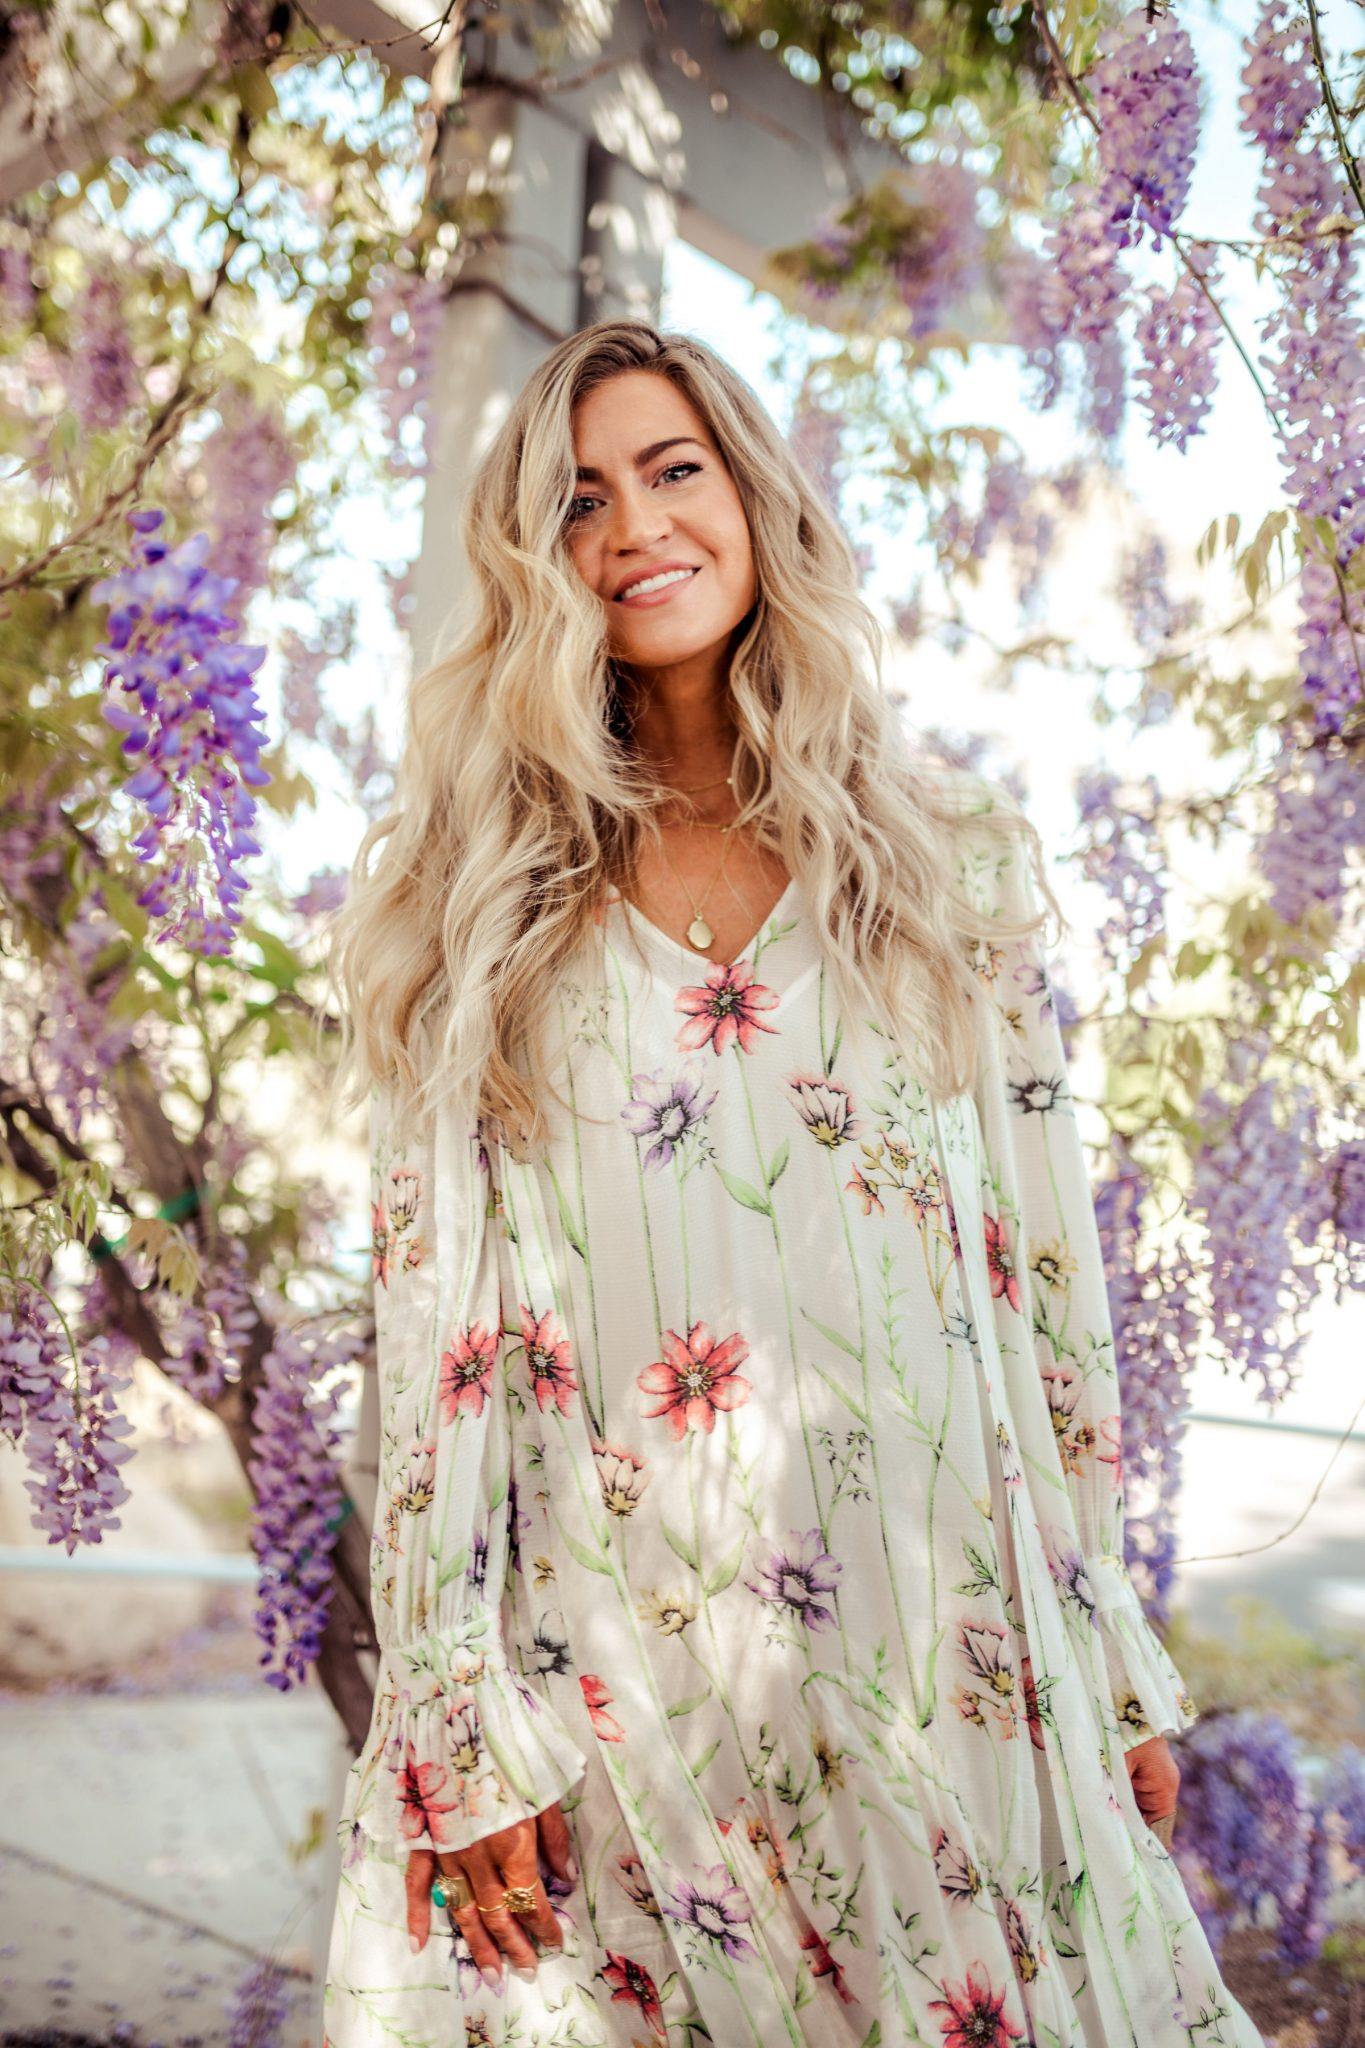 Floral print dresses done right for spring